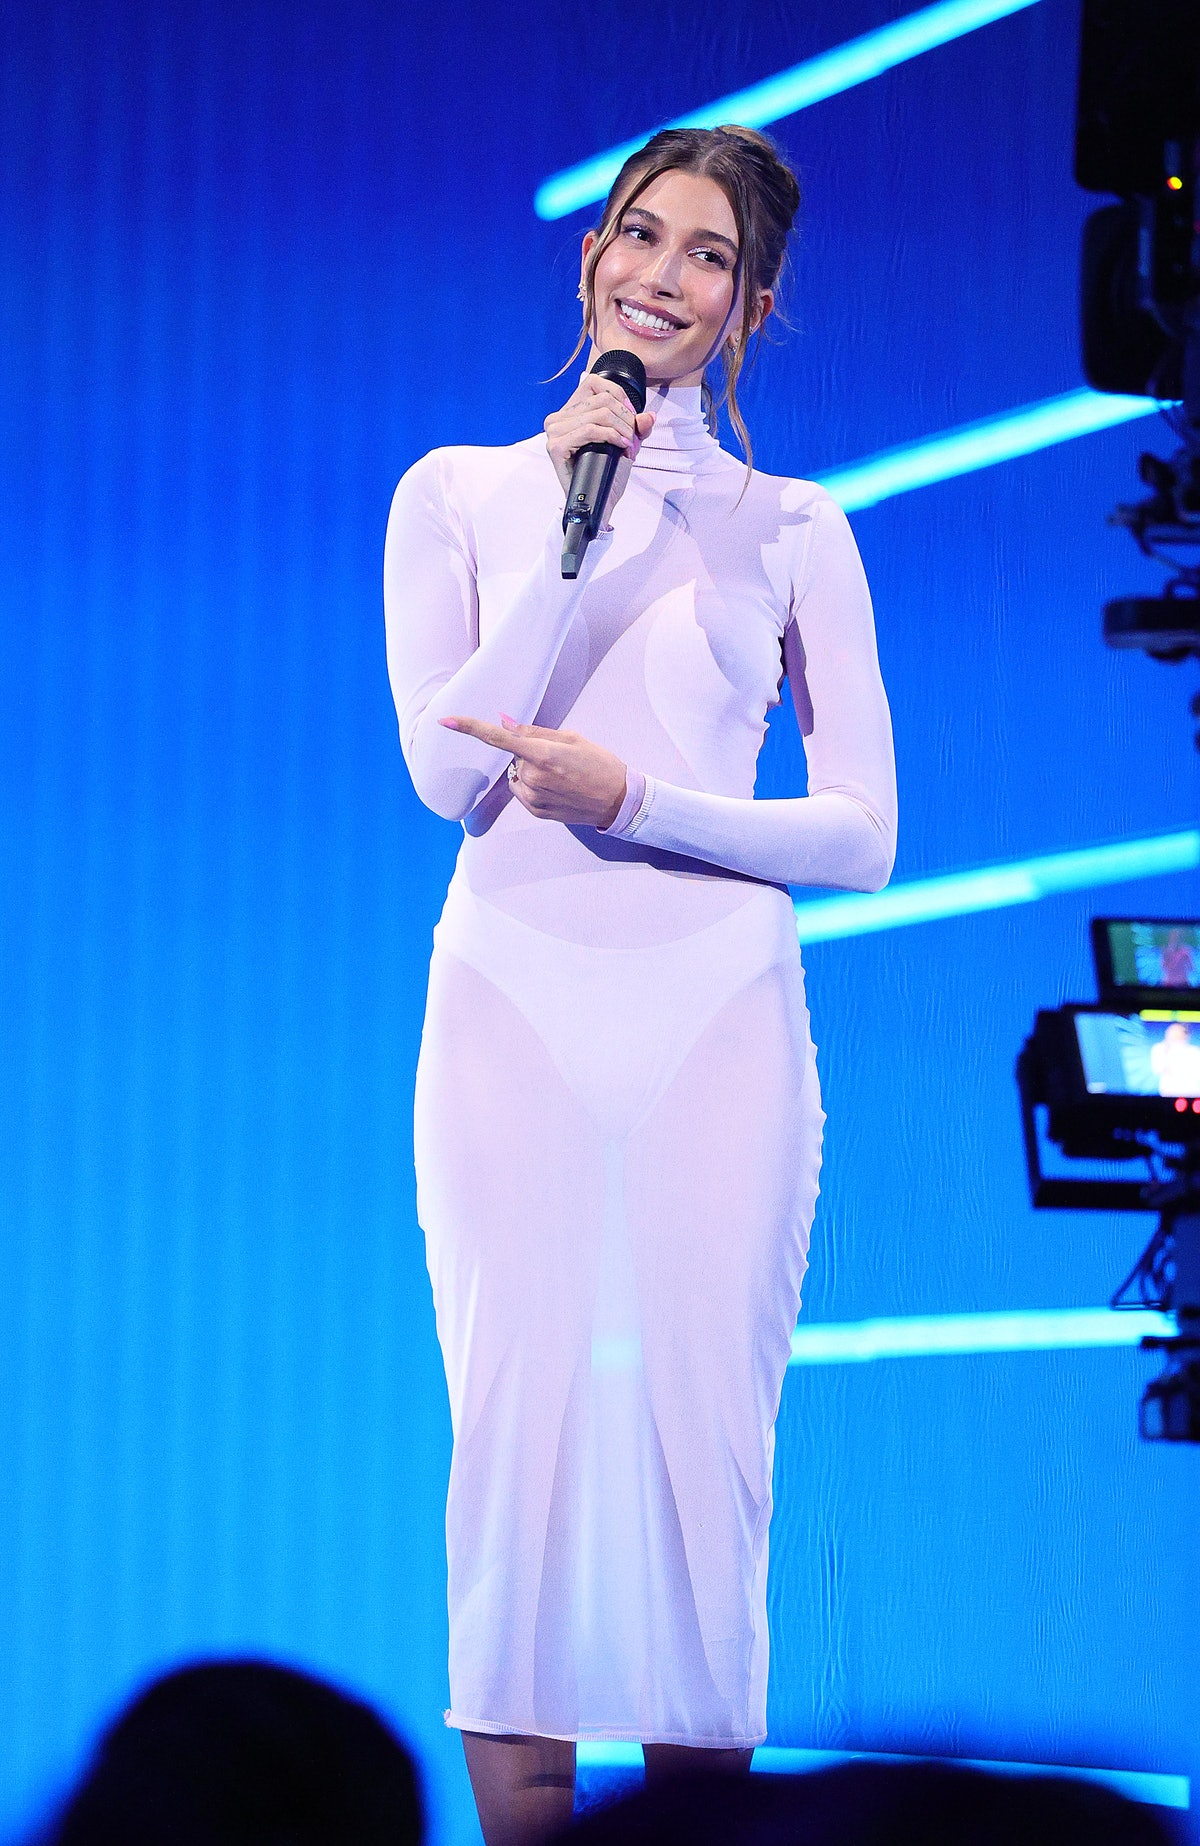 Hailey Bieber wear a sheer, white body con dress to the 2021 MTV Video Music Awards at Barclays Cent...